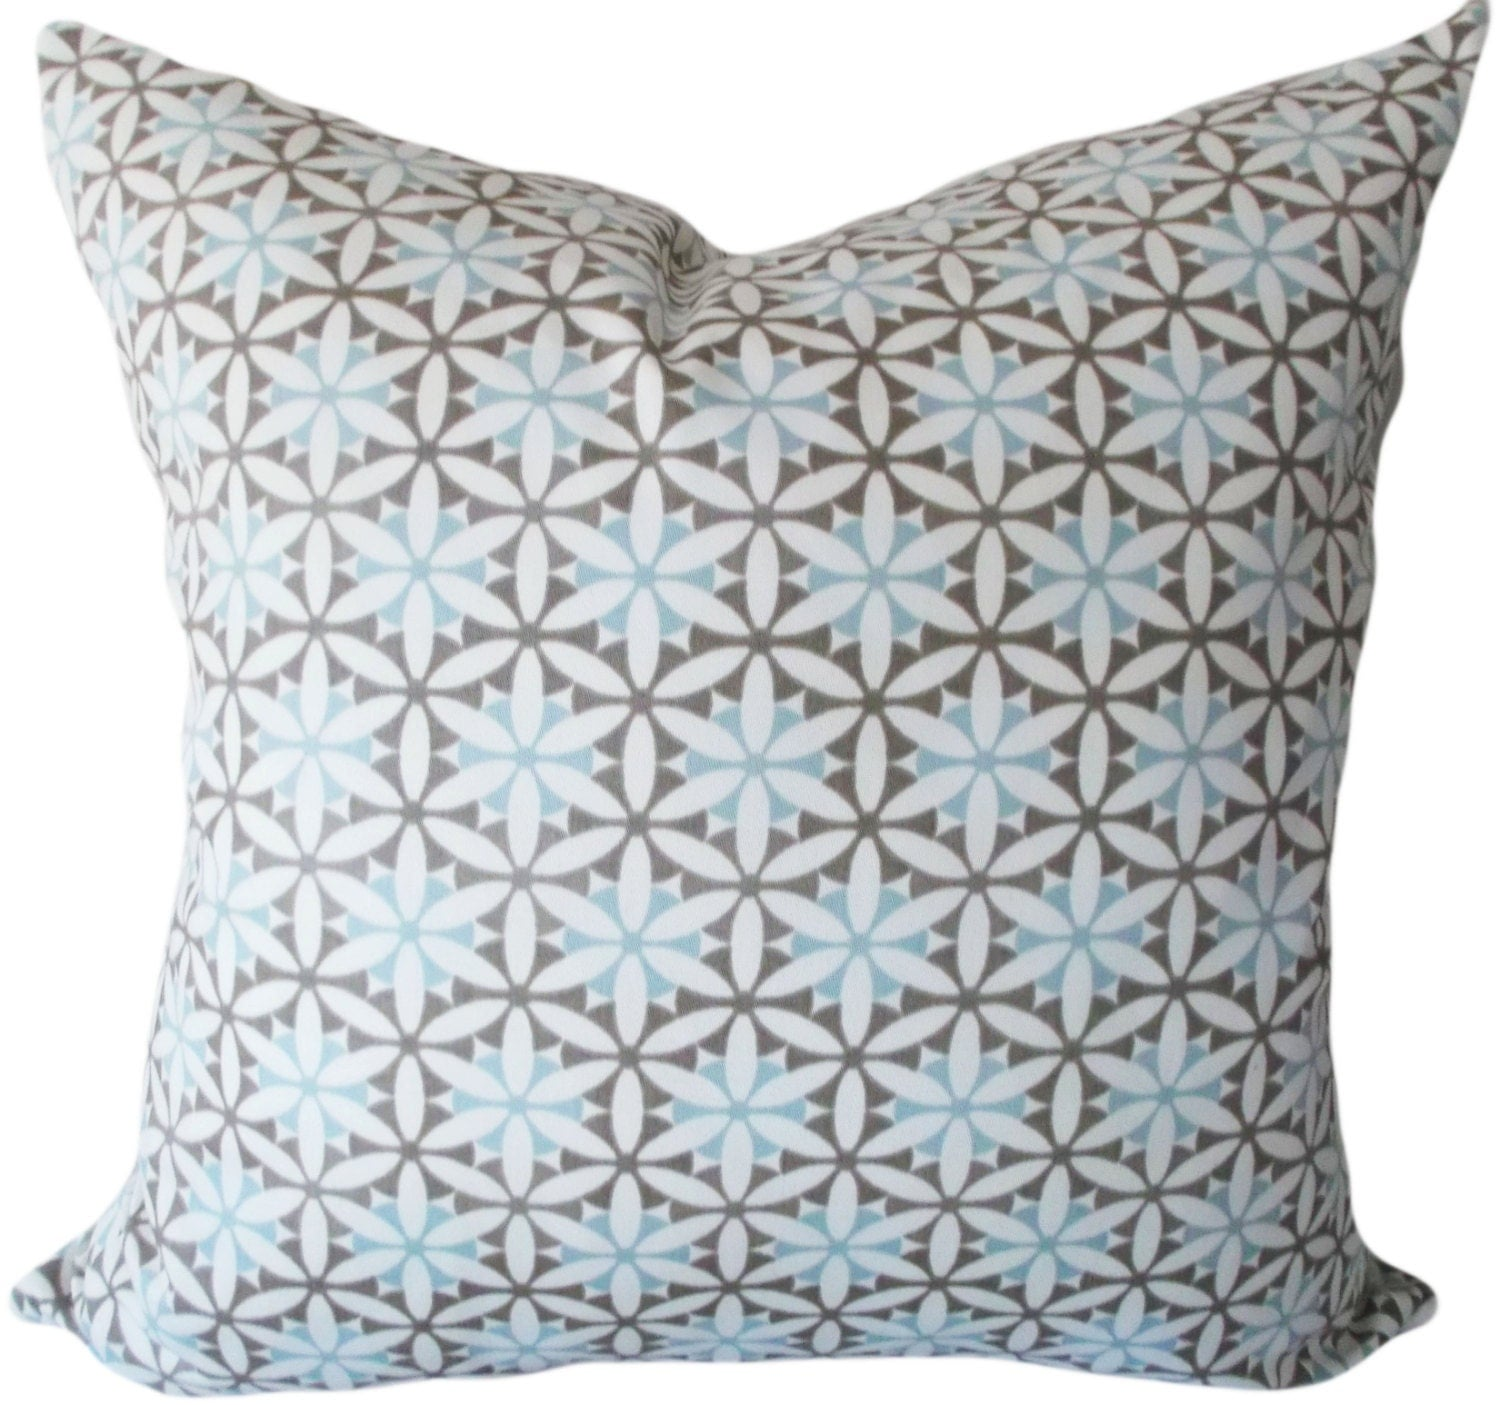 Waverly Decorative Throw Pillows : Waverly Geometric Circles Decorative Pillow Cover Throw